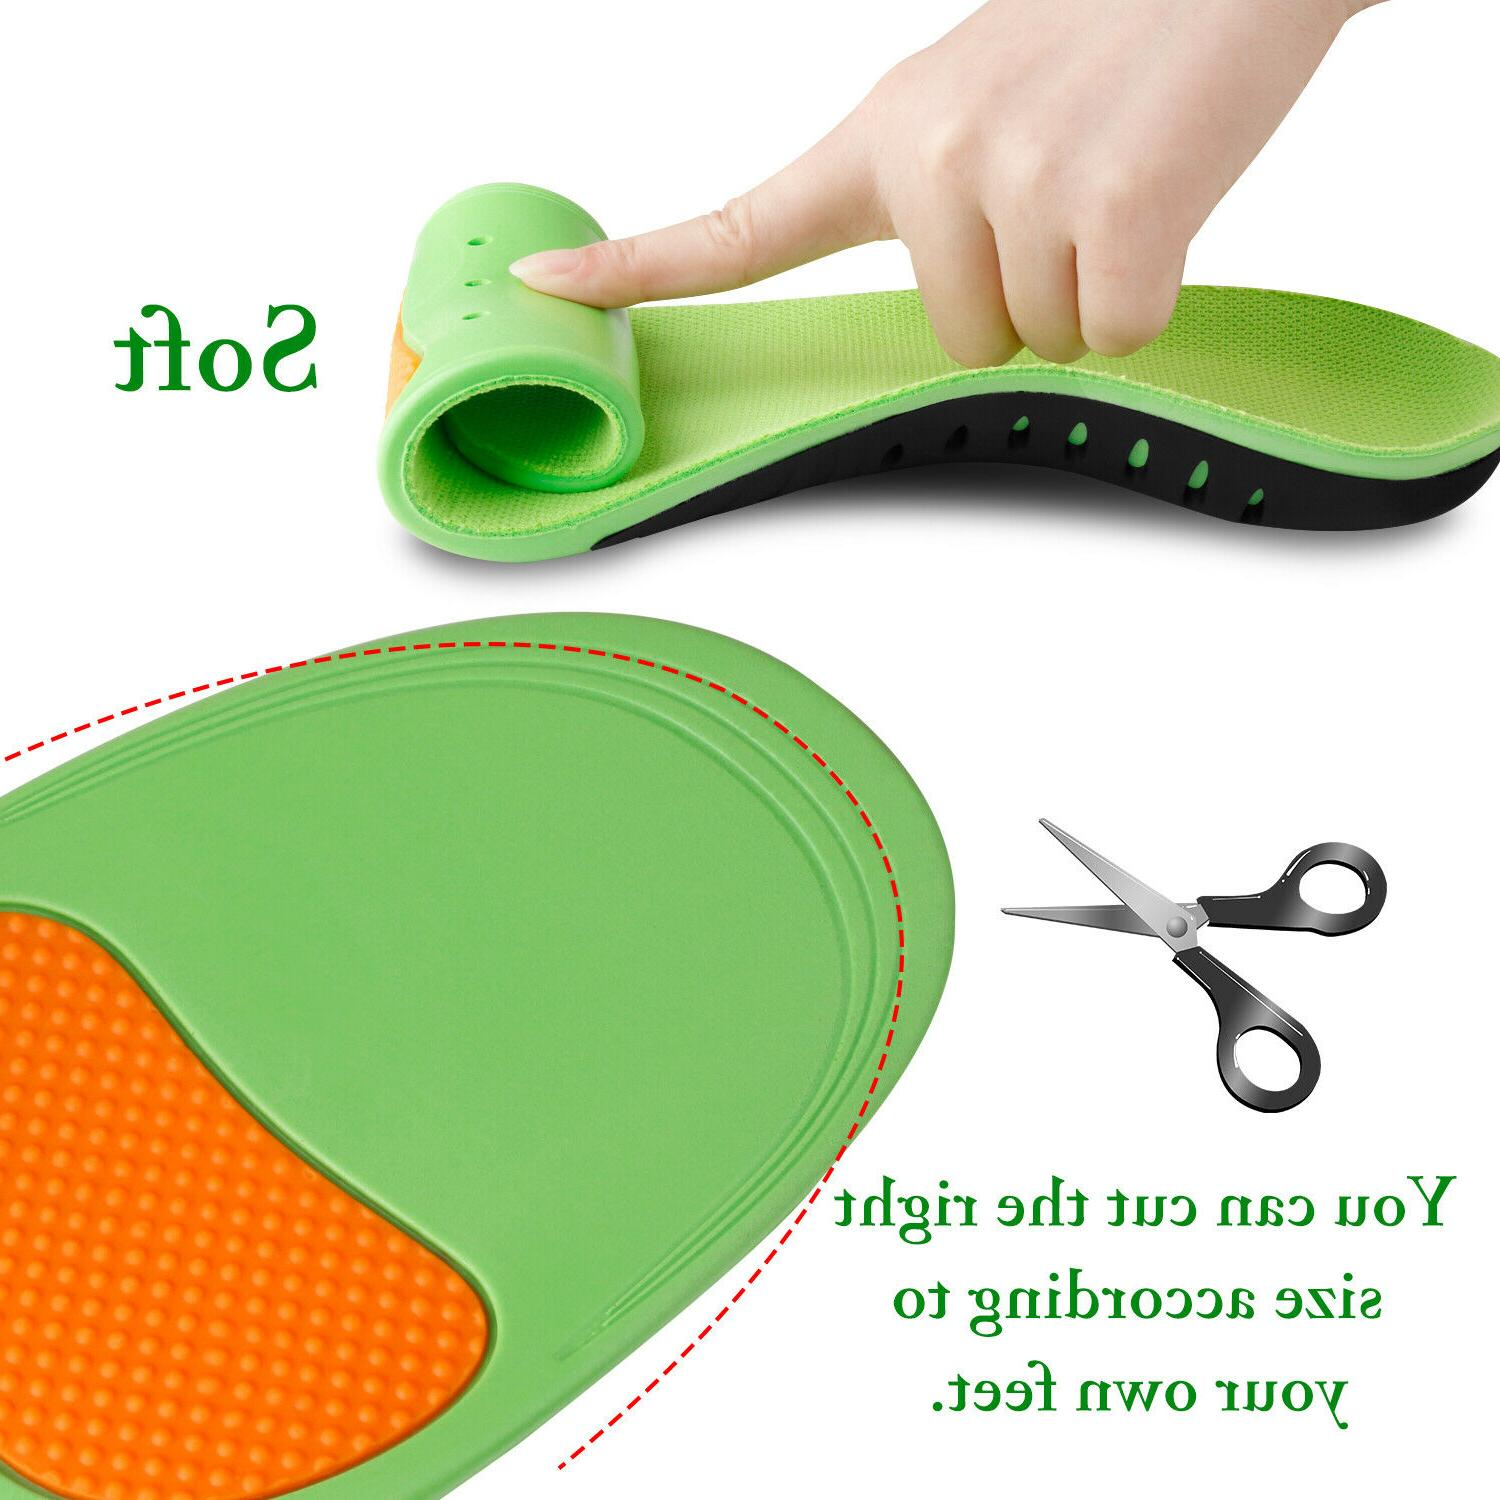 Orthotic Inserts Flat Feet High Support for Plantar